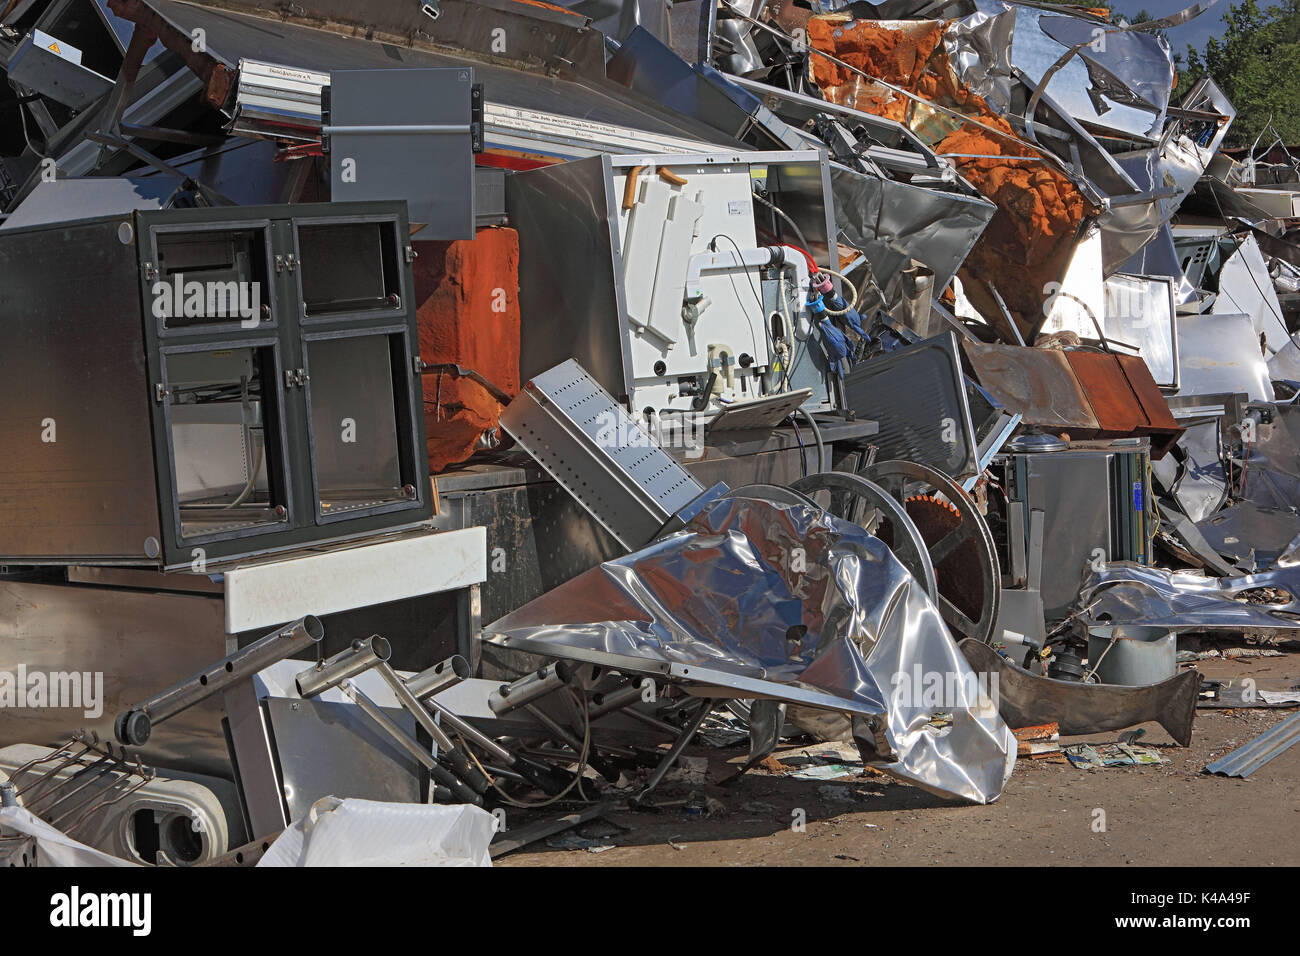 Metal Rubbish Of Commercial Kind On A Scrap Metal Waste Dump In A Recycling  Company,